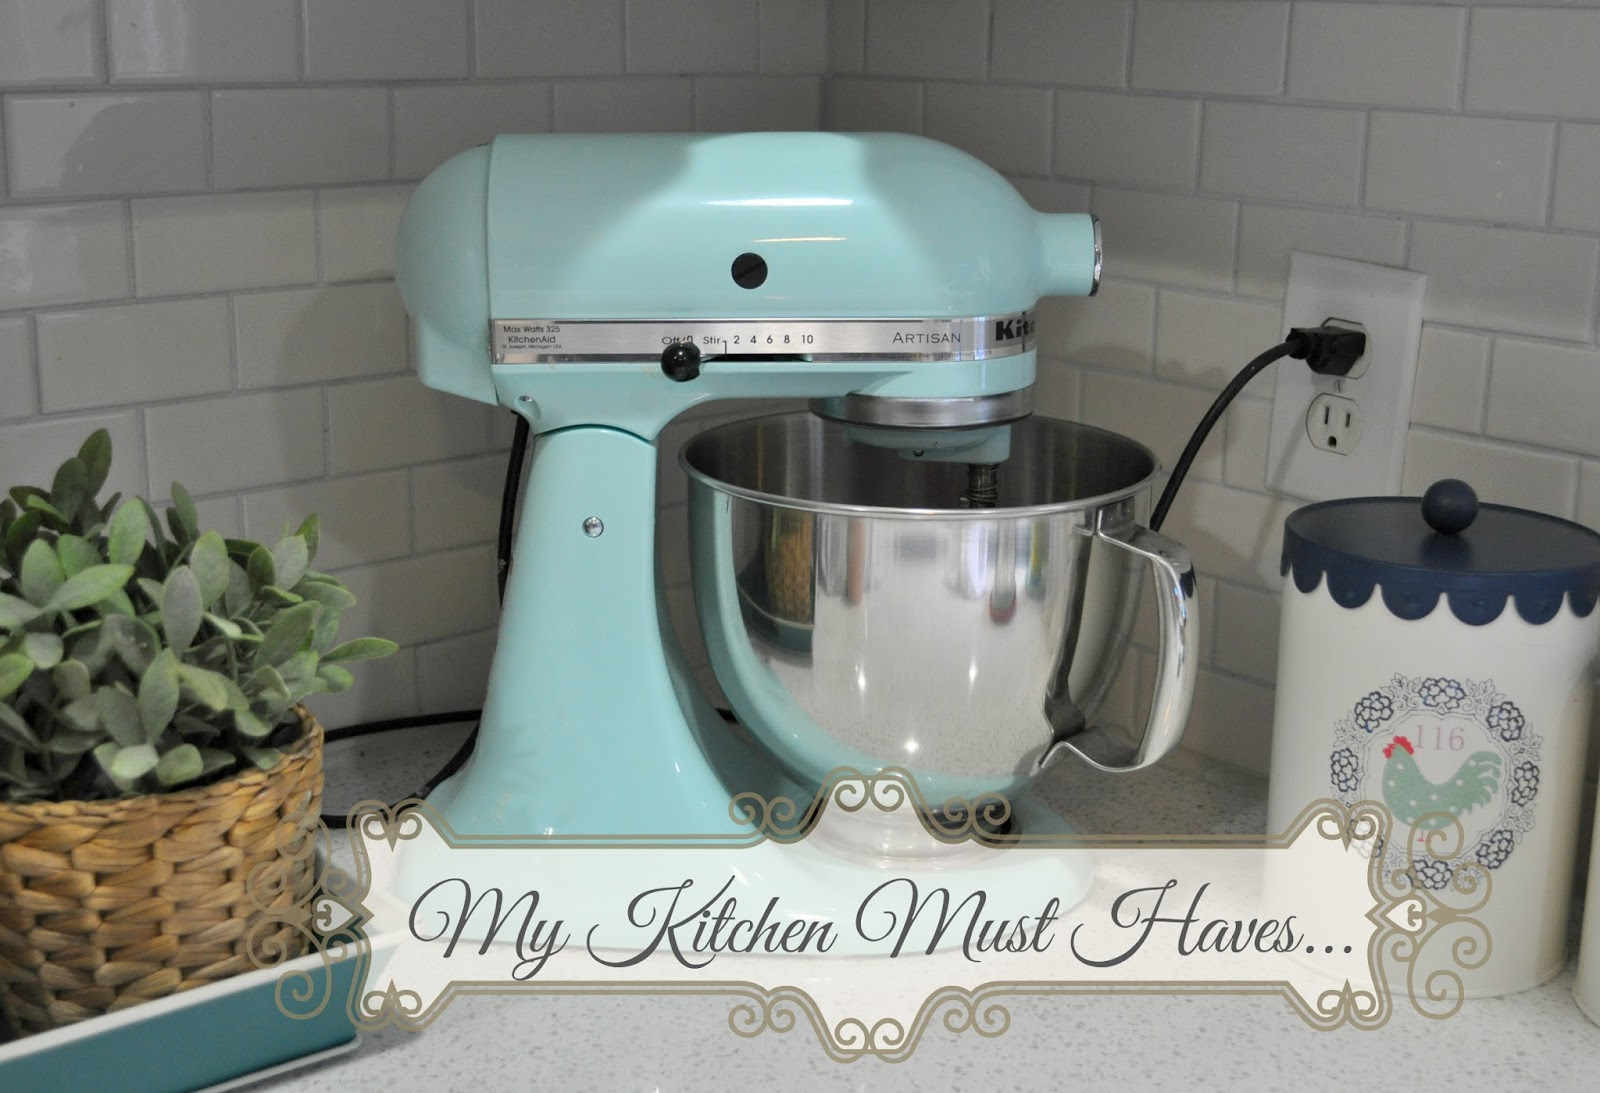 Suburbs Mama: My kitchen must haves..